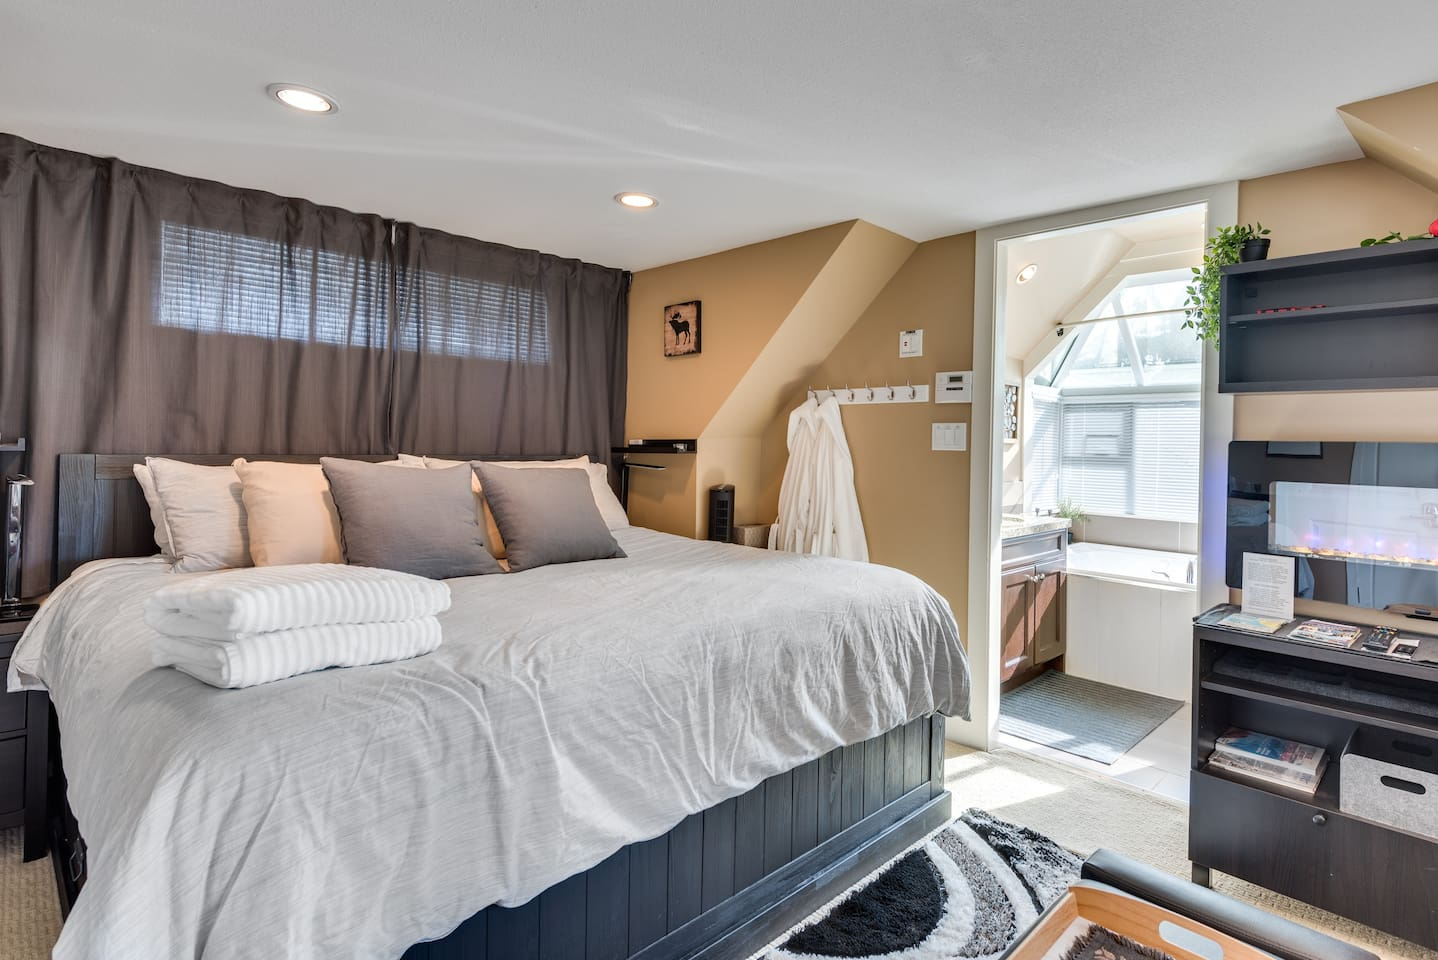 A comfy loft room in the heart of Central Lonsdale with ensuite jacuzzi bath, couch, TV, Keurig, fridge, microwave and comfy King Size bed loaded with pillows...